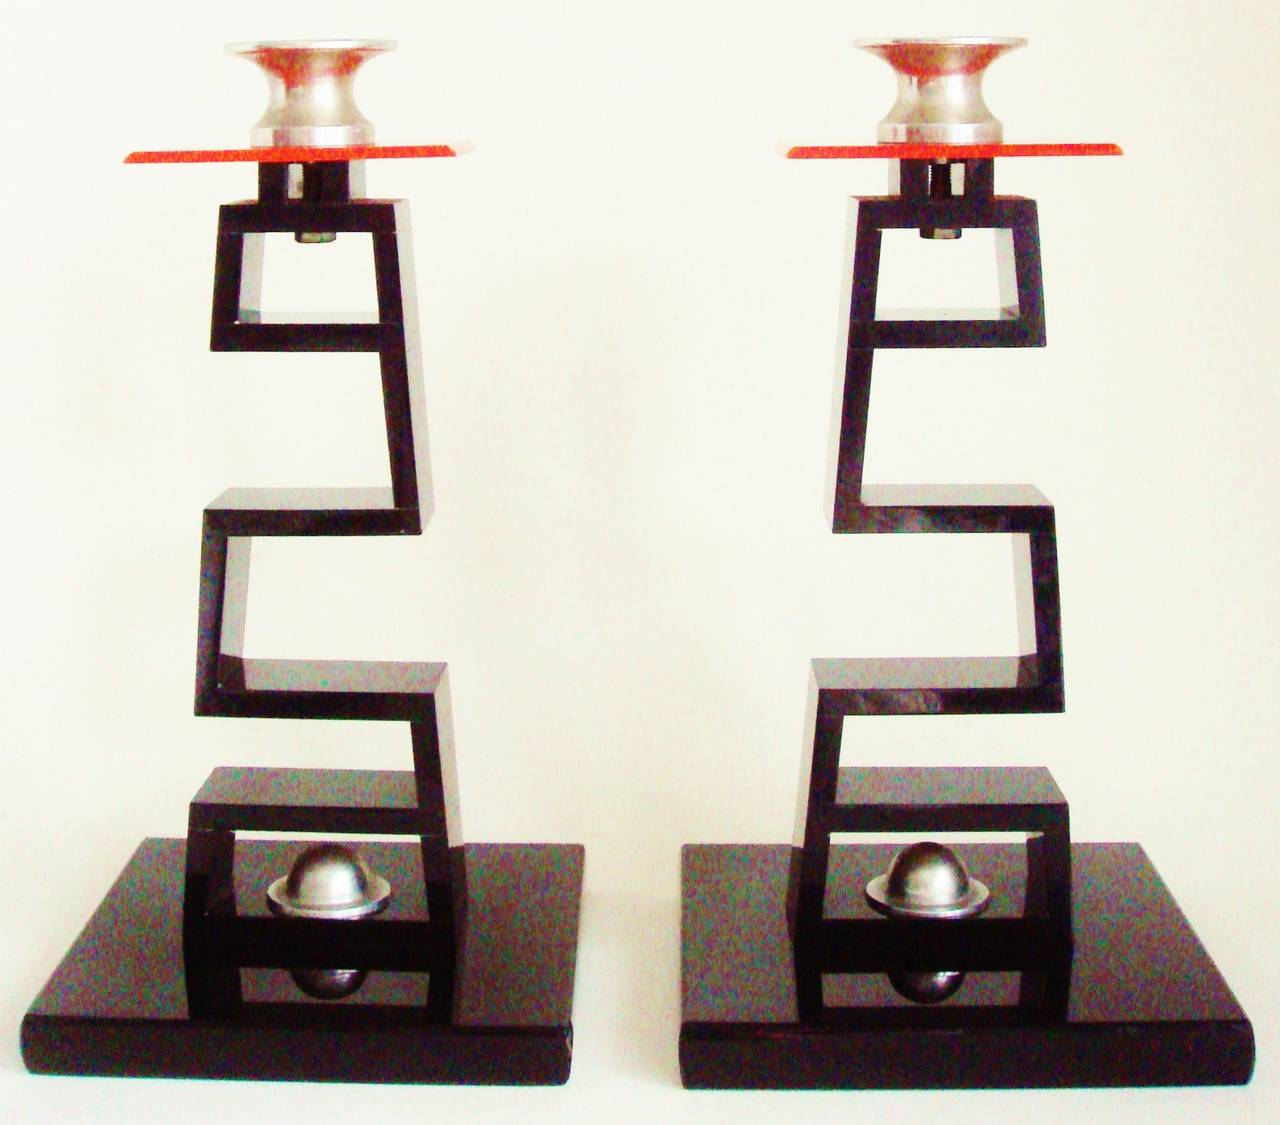 Cast Pair of Large American Asian Inspired Candlesticks in the Manner of James Mont For Sale